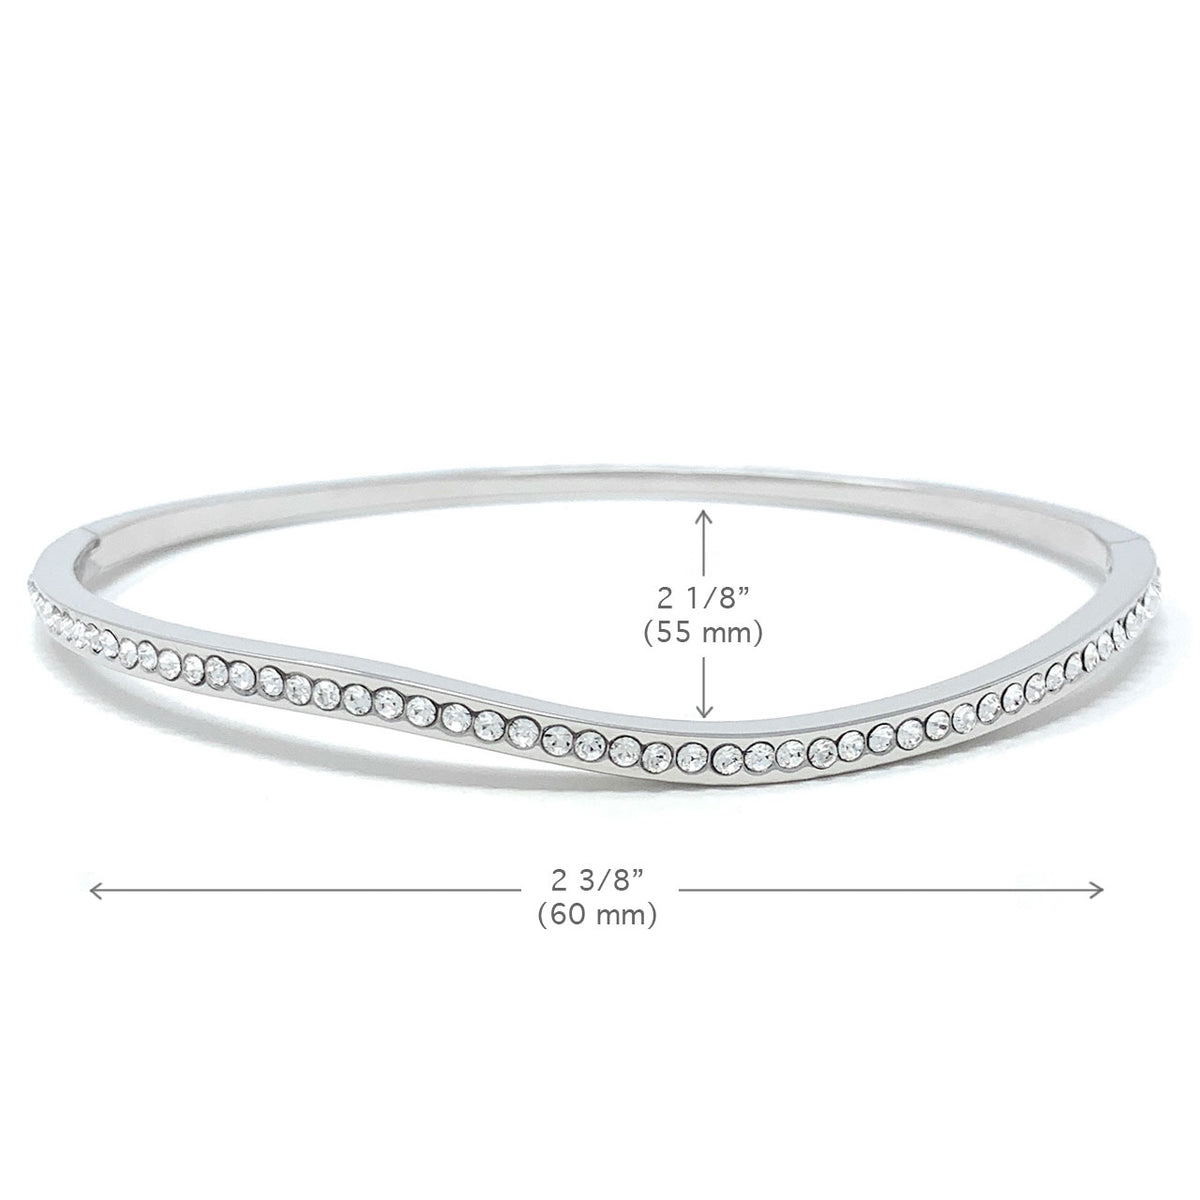 Amelia Curve Pave Bangle Bracelet with White Clear Round Crystals from Swarovski Silver Toned Rhodium Plated - Ed Heart